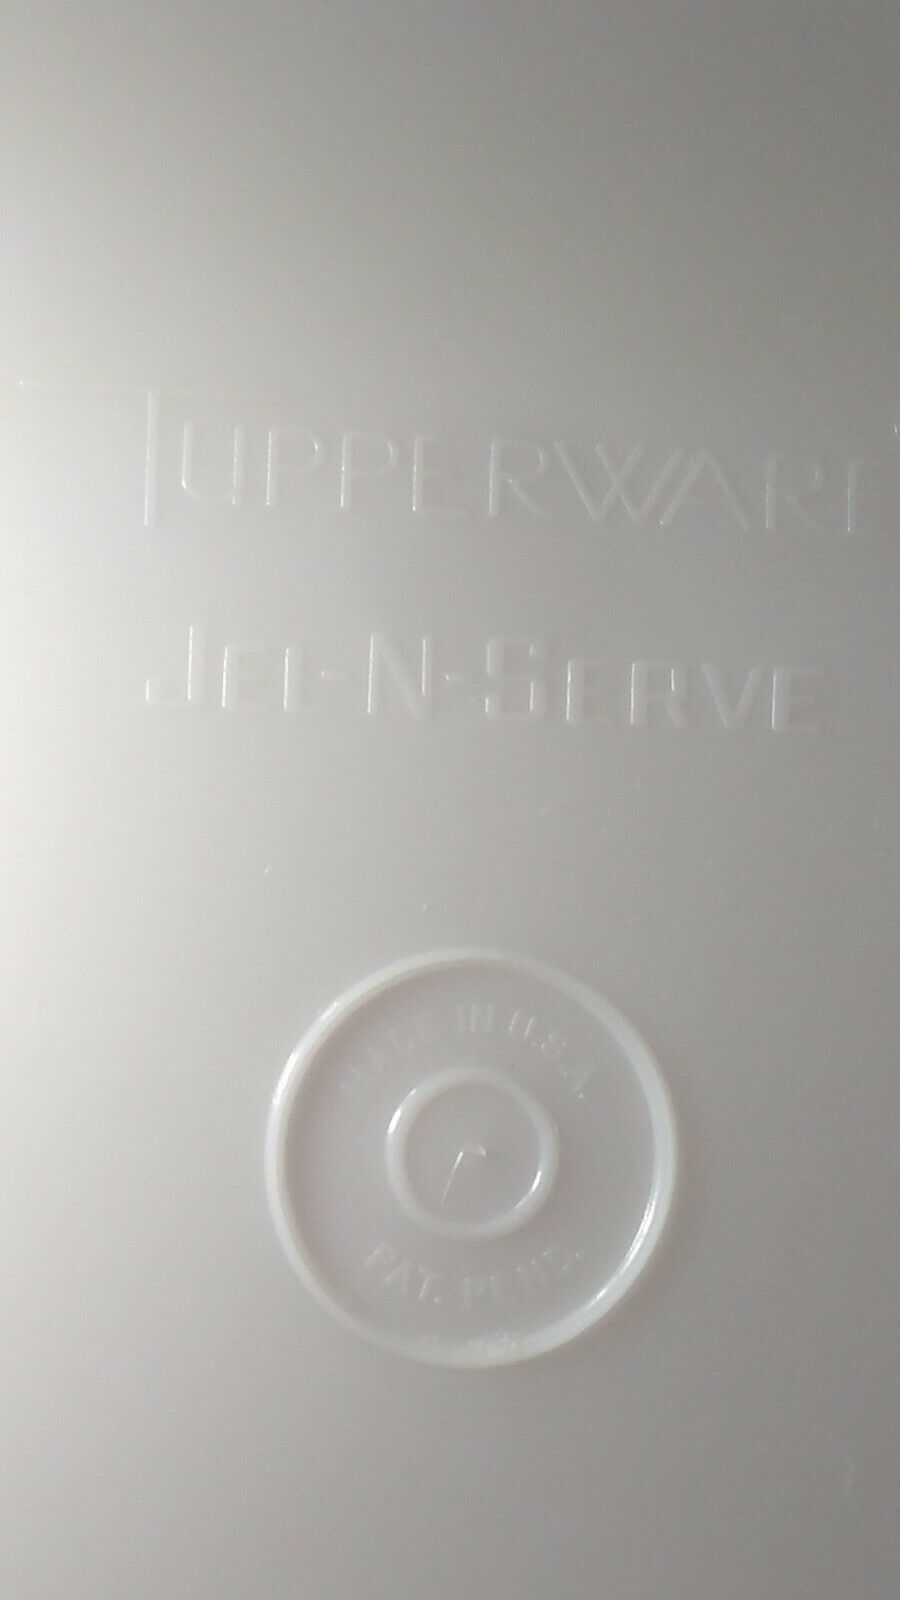 FUN Vintage Tupperware Jel-N-Serve Mold With White Tray and Heart Design Top image 9